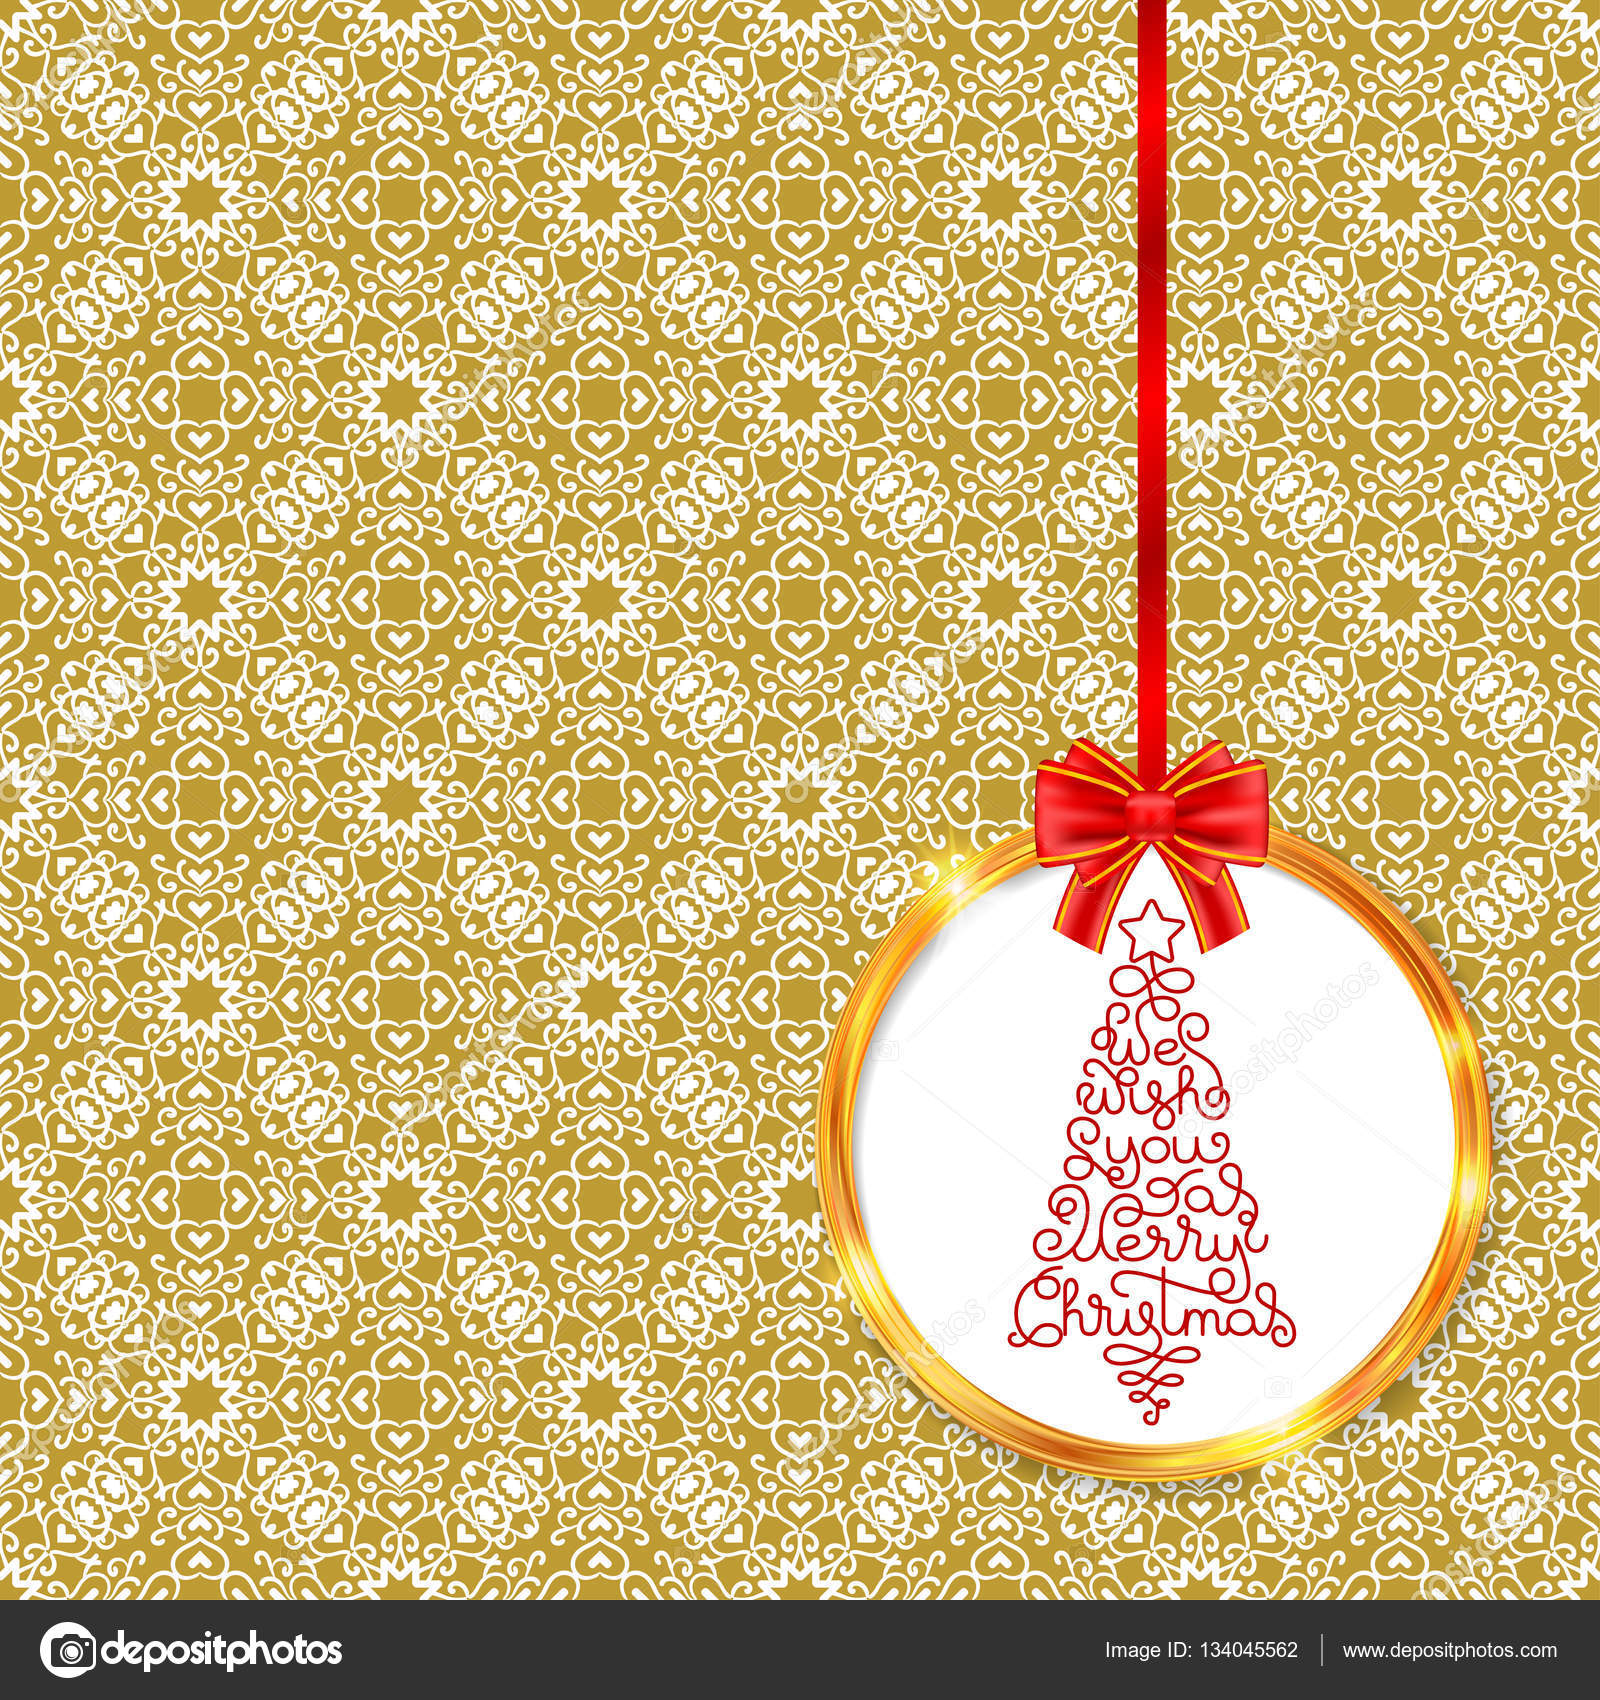 Christmas tree in golden circle — Stock Vector © josephine art